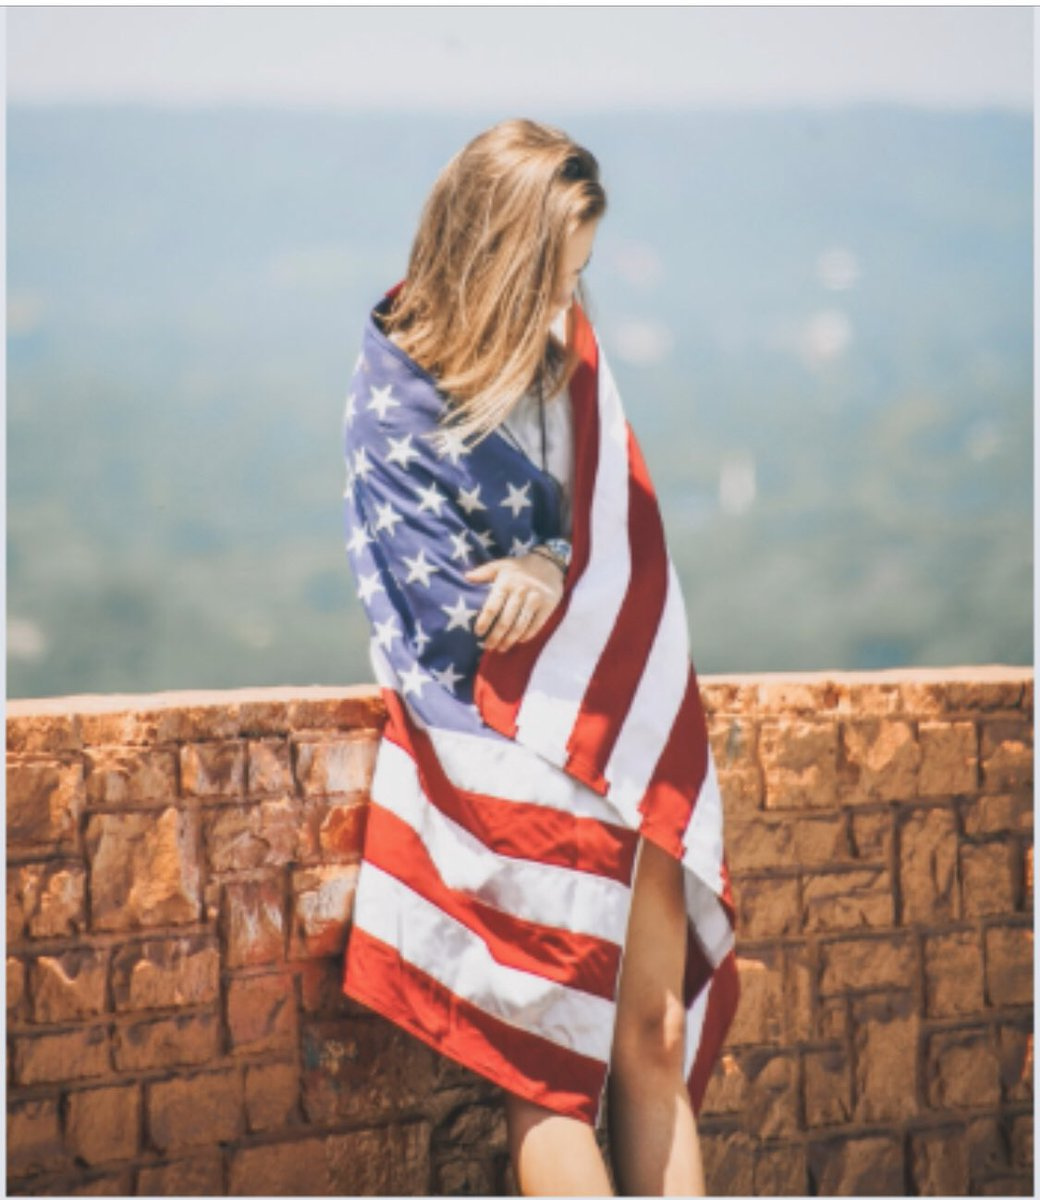 Bold stripes, bright stars, brave hearts. Proud to be an American! #HappyMemorialDay #BeSafe  <br>http://pic.twitter.com/zuO8F7f4pf